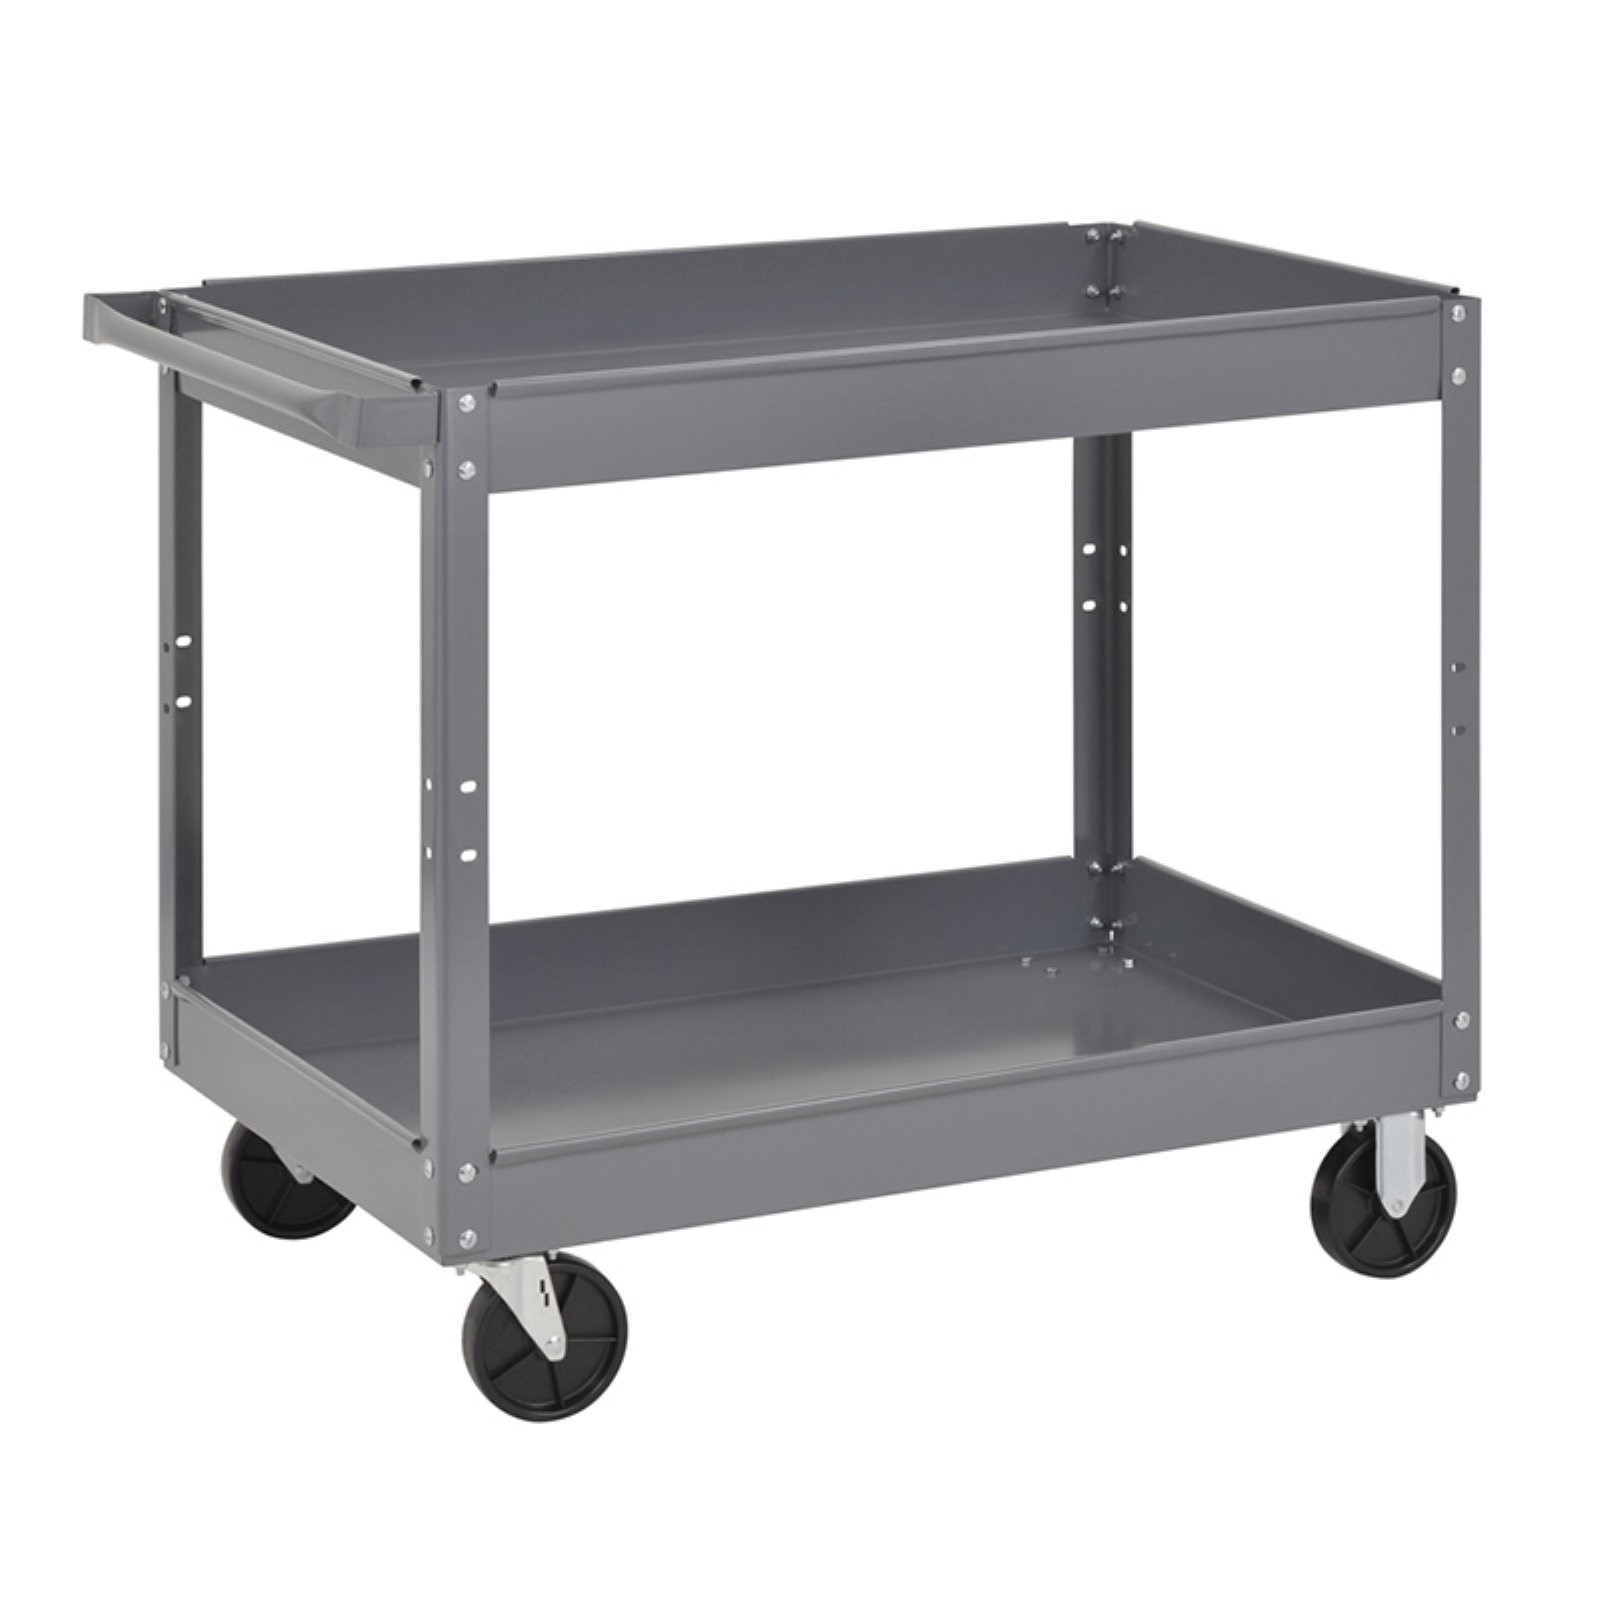 Edsal Industrial Gray Commercial Service Cart, SC2024